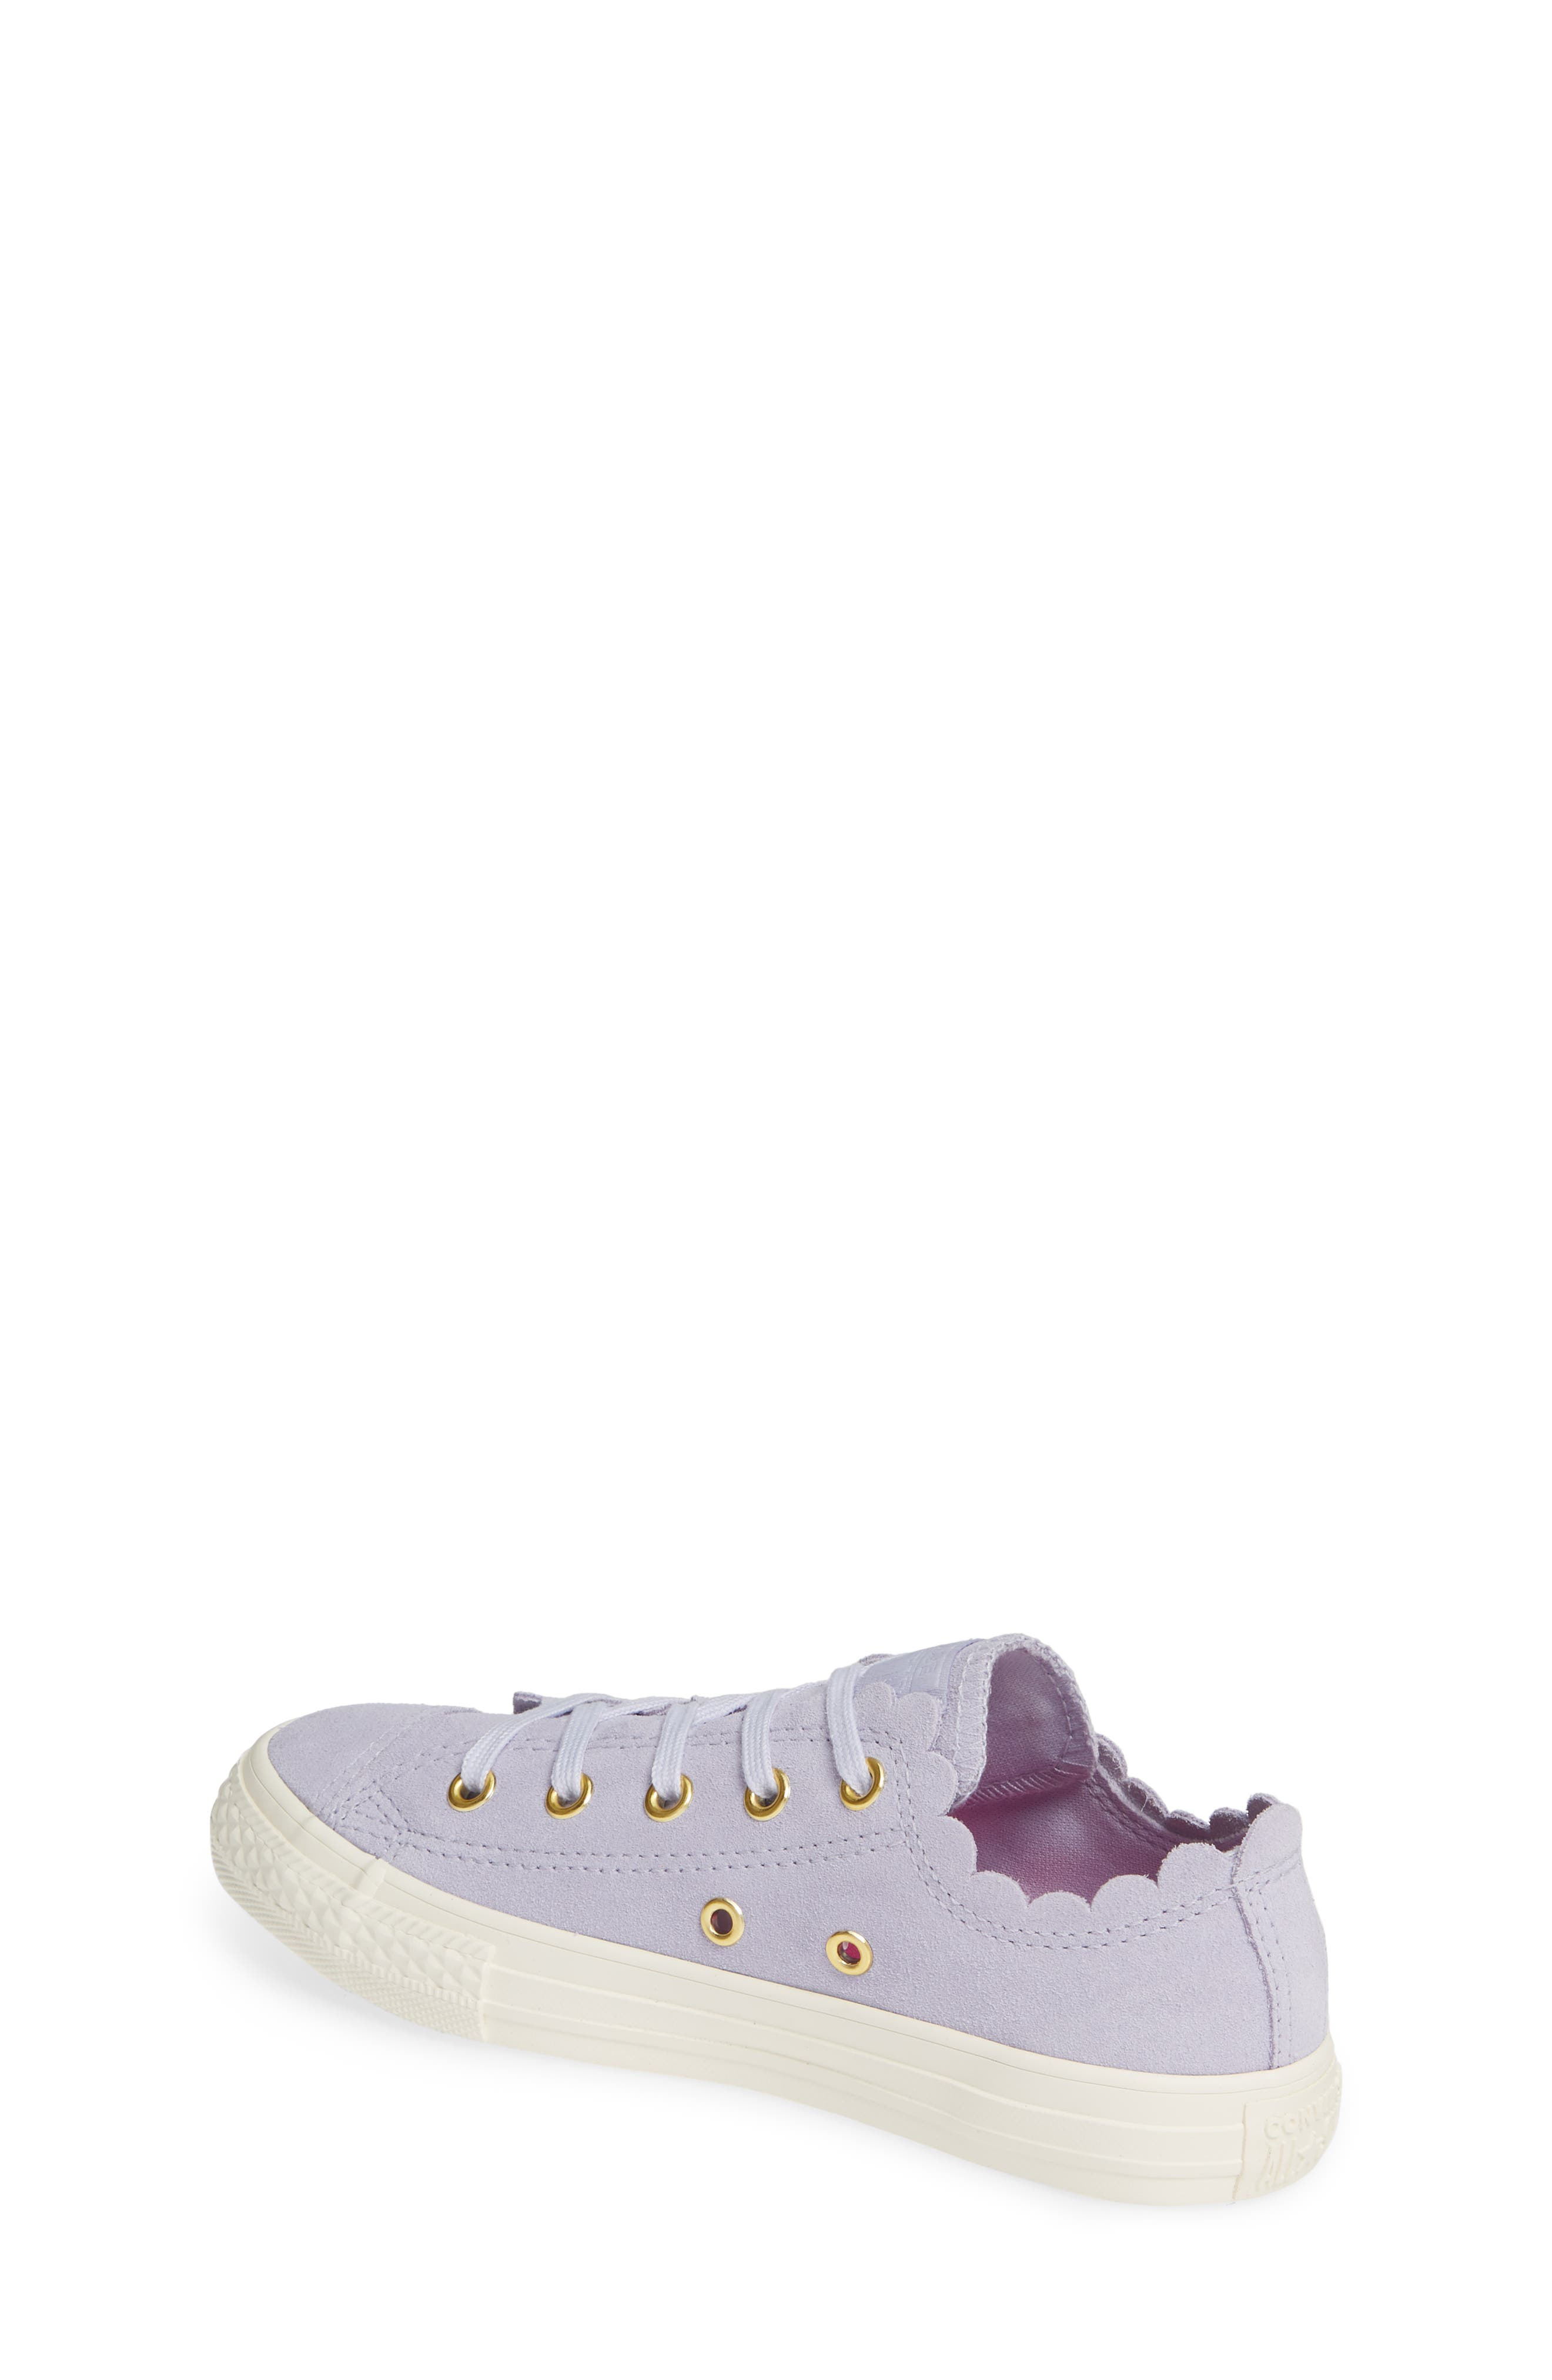 CONVERSE, Chuck Taylor<sup>®</sup> All Star<sup>®</sup> Ox Scallop Sneaker, Alternate thumbnail 2, color, OXYGEN PURPLE/ OXYGEN PURPLE